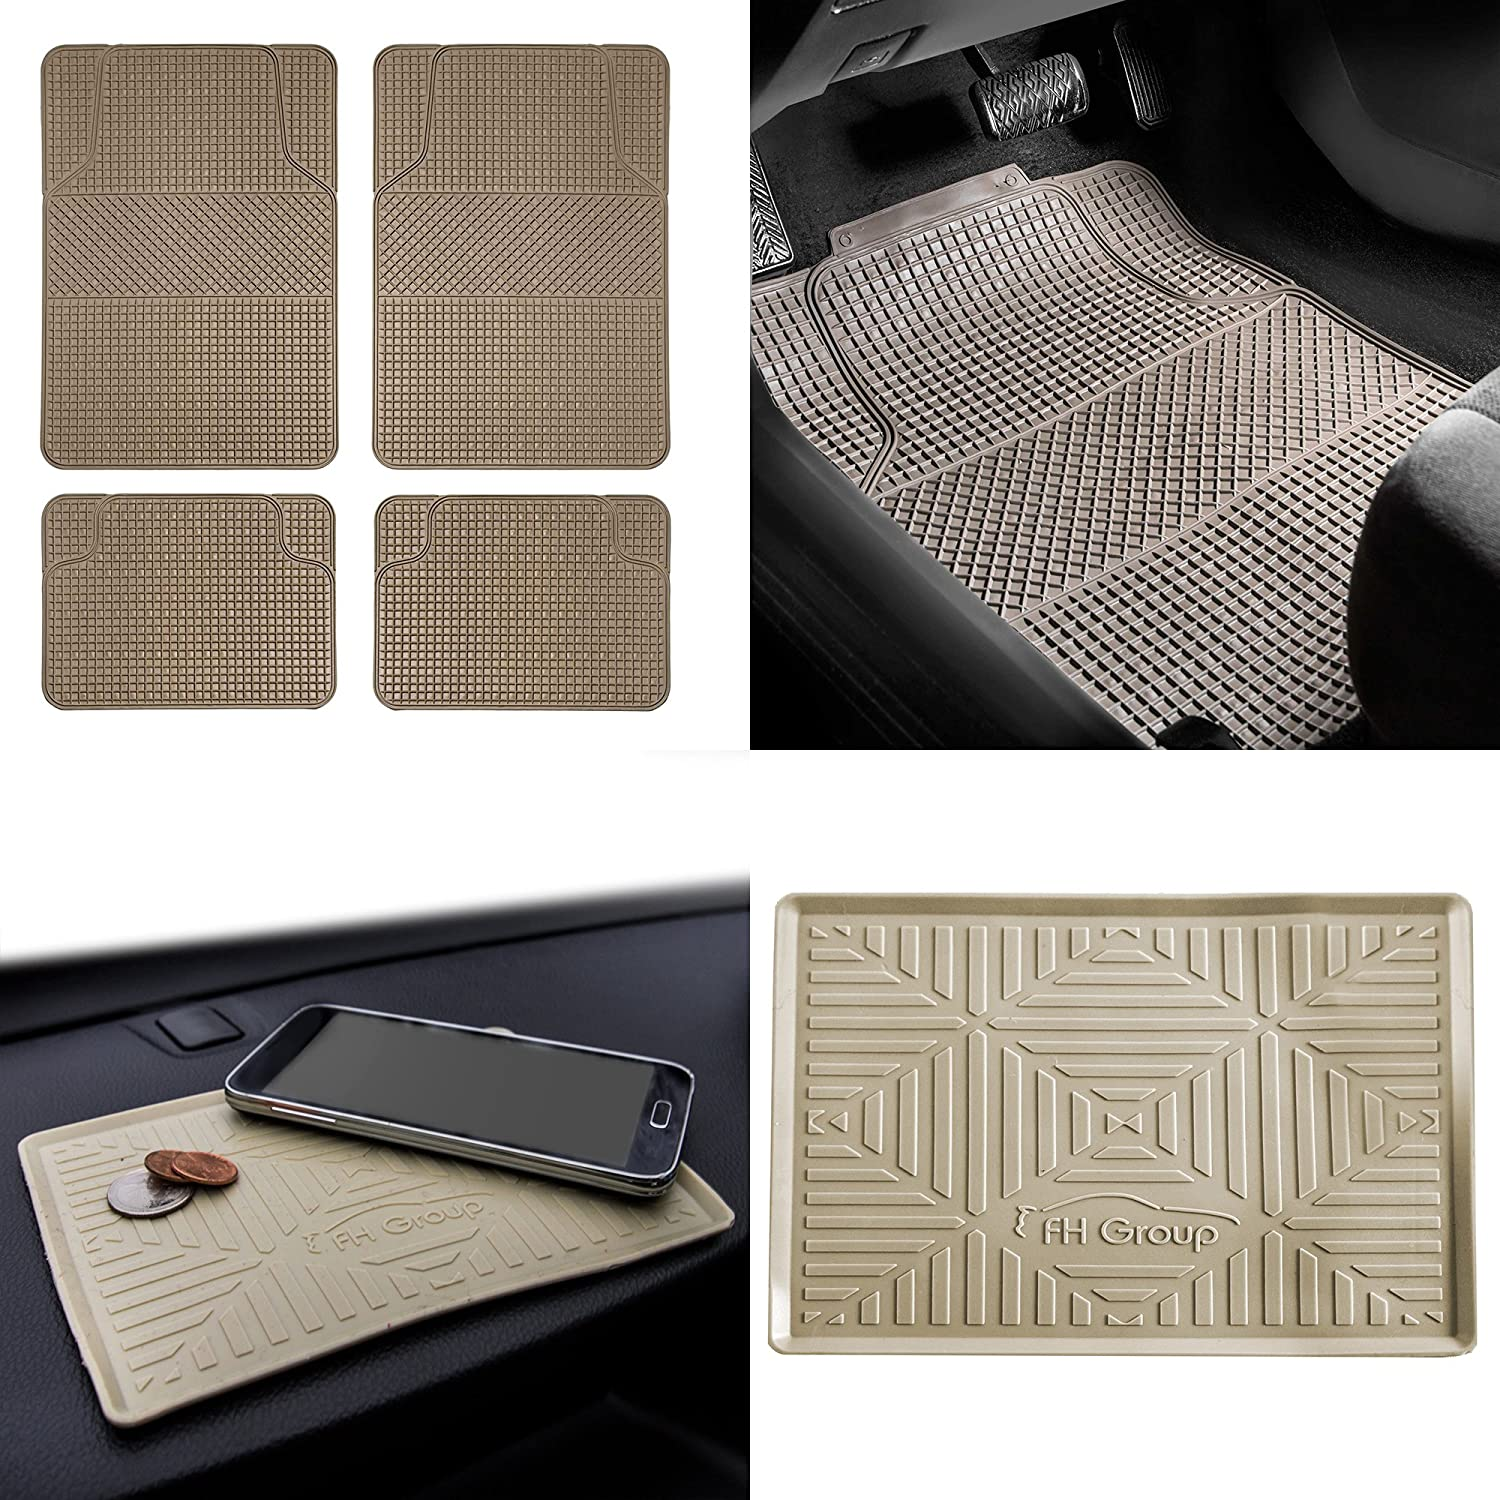 FH Group F11300 Anti-Slip Modern Checker Style All Weather Auto Floor Mats + FH3011 Silicone Anti-Slip Dash Mat, Beige-Fit Most Car, Truck, SUV, or Van